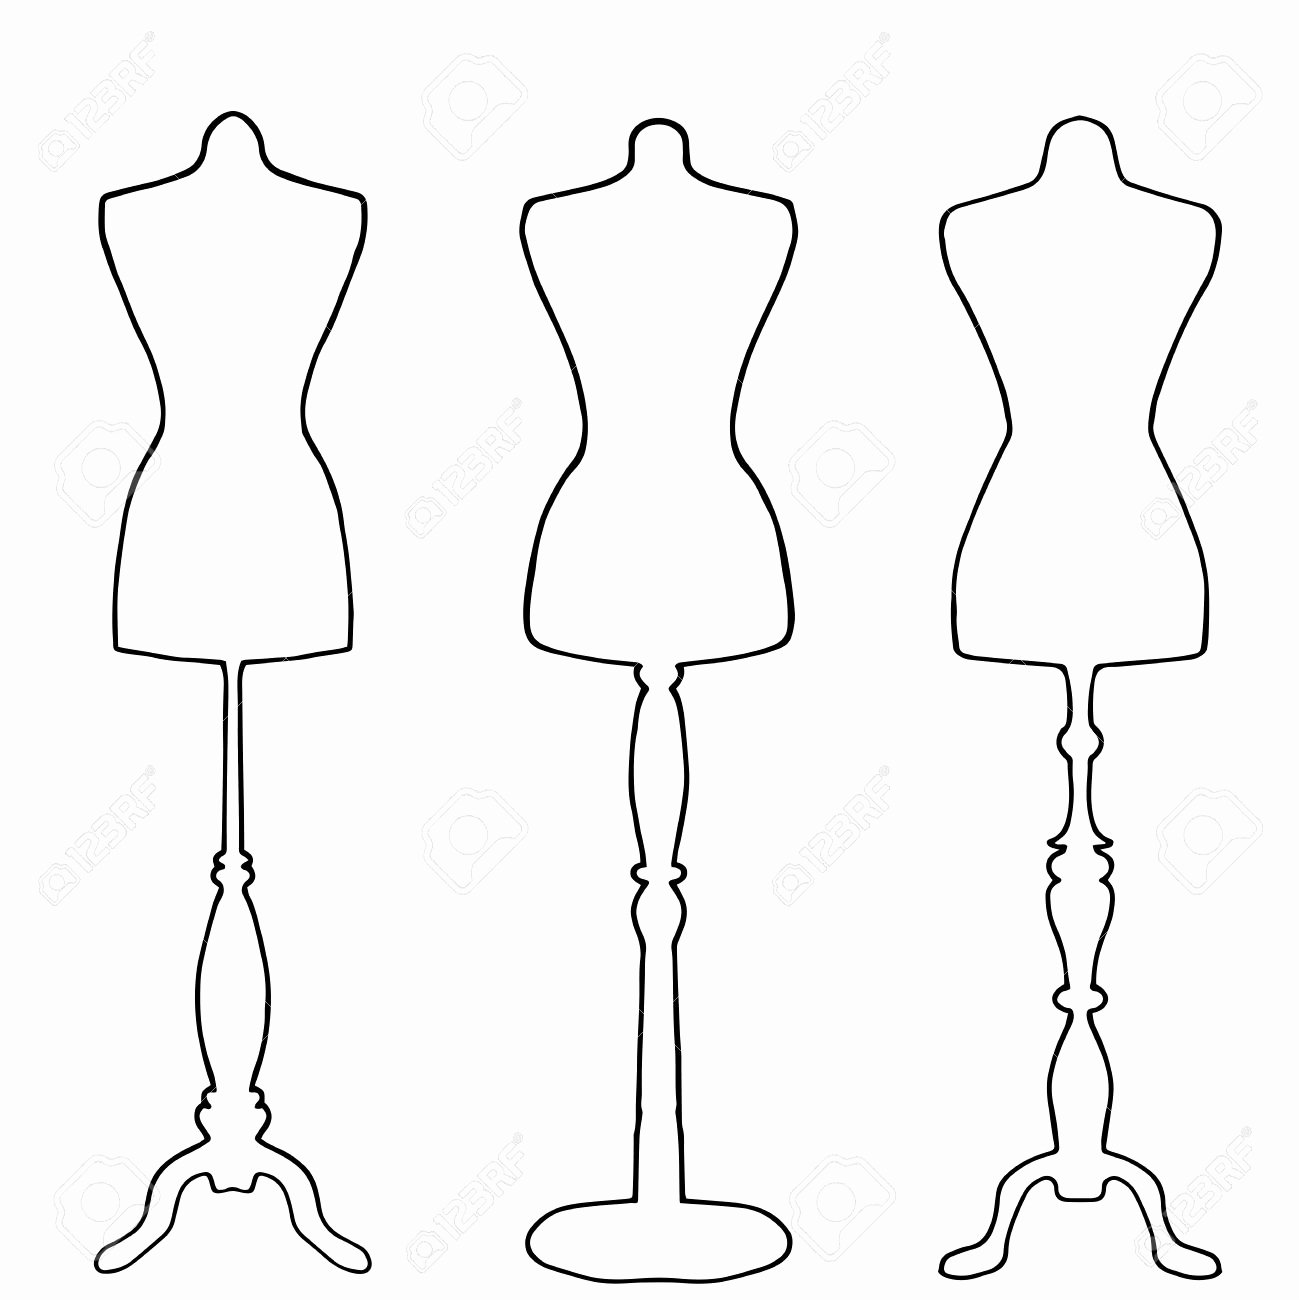 Mannequin Template for Fashion Design Inspirational Fashion Mannequin Drawing at Getdrawings